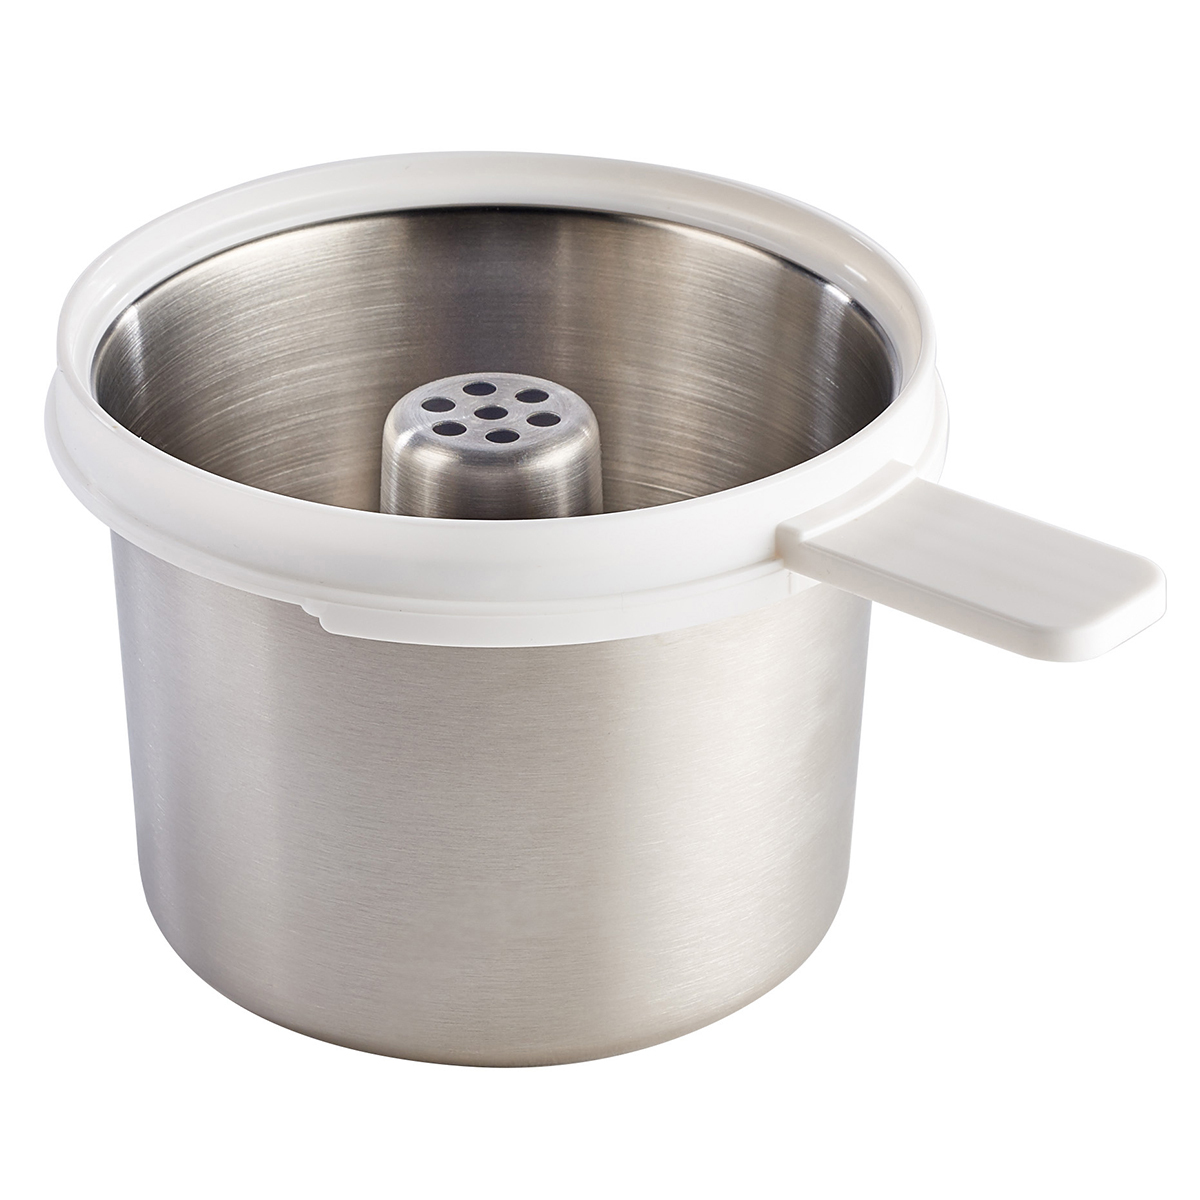 Cuiseur & Mixeur Pasta-Rice Cooker Babycook Neo - Inox Pasta-Rice Cooker Babycook Neo - Inox